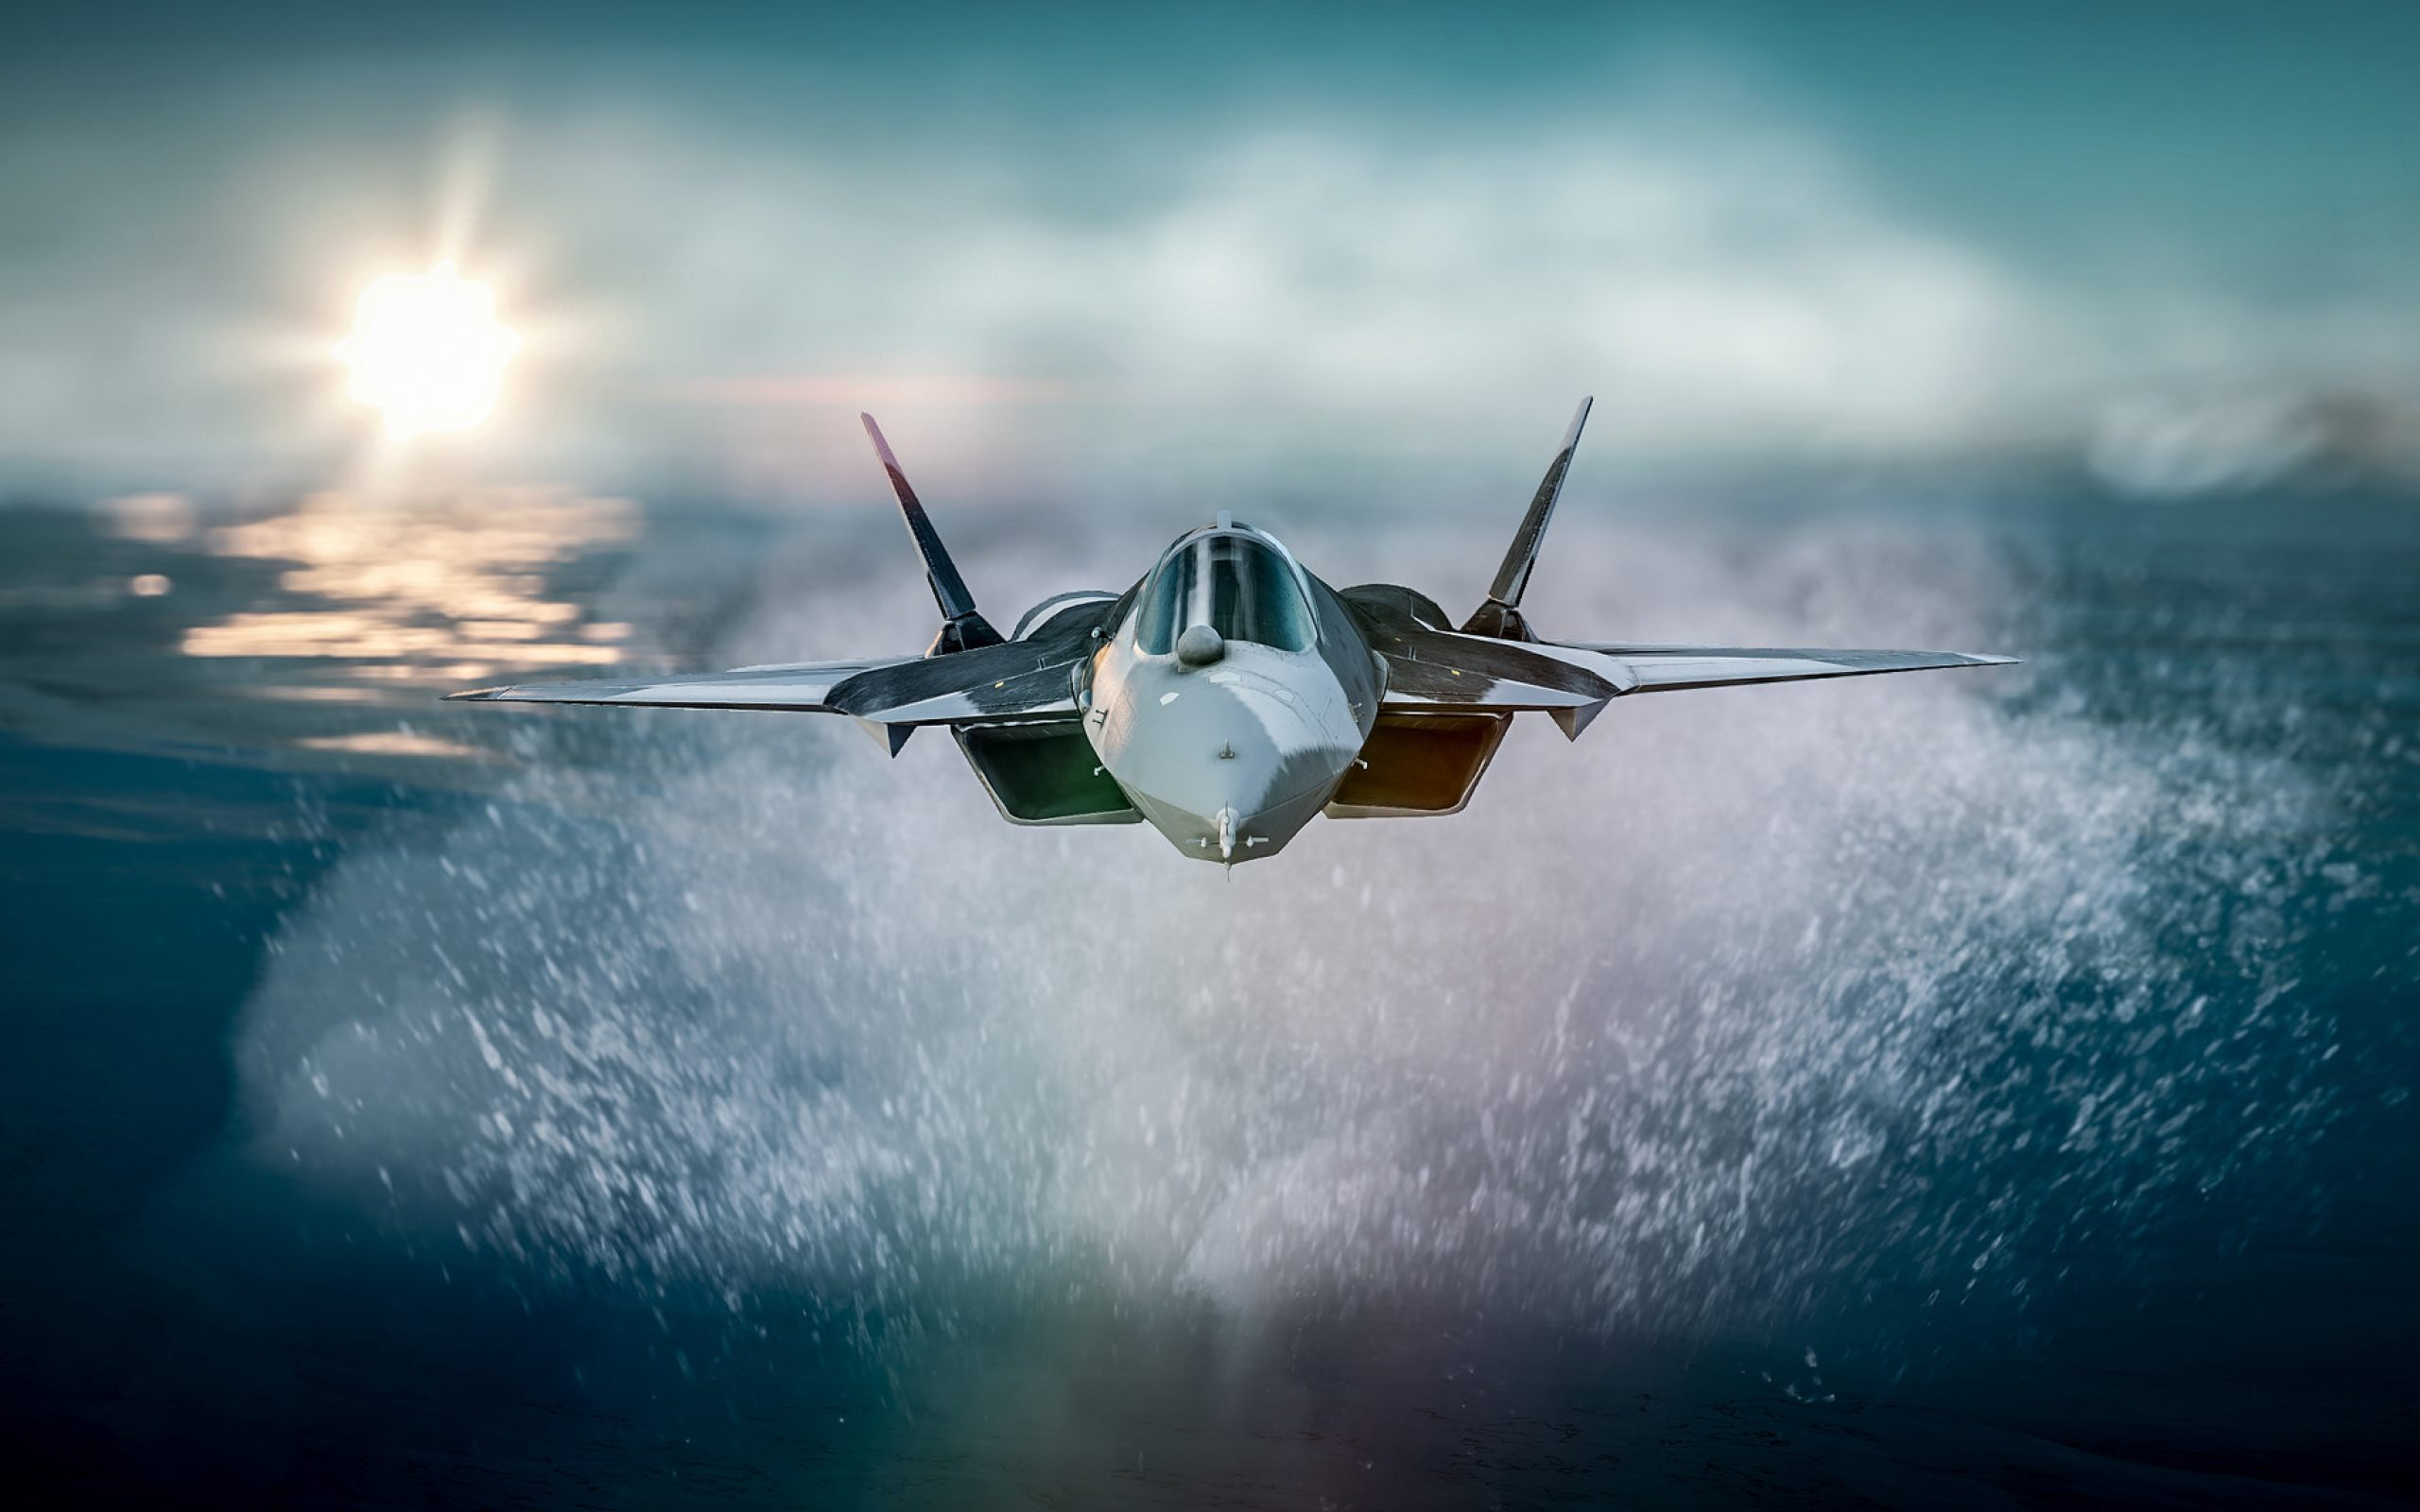 Aircraft flying over sea hd wallpaper by rogue rattlesnake on deviantart aircraft flying over sea hd wallpaper by rogue rattlesnake voltagebd Choice Image